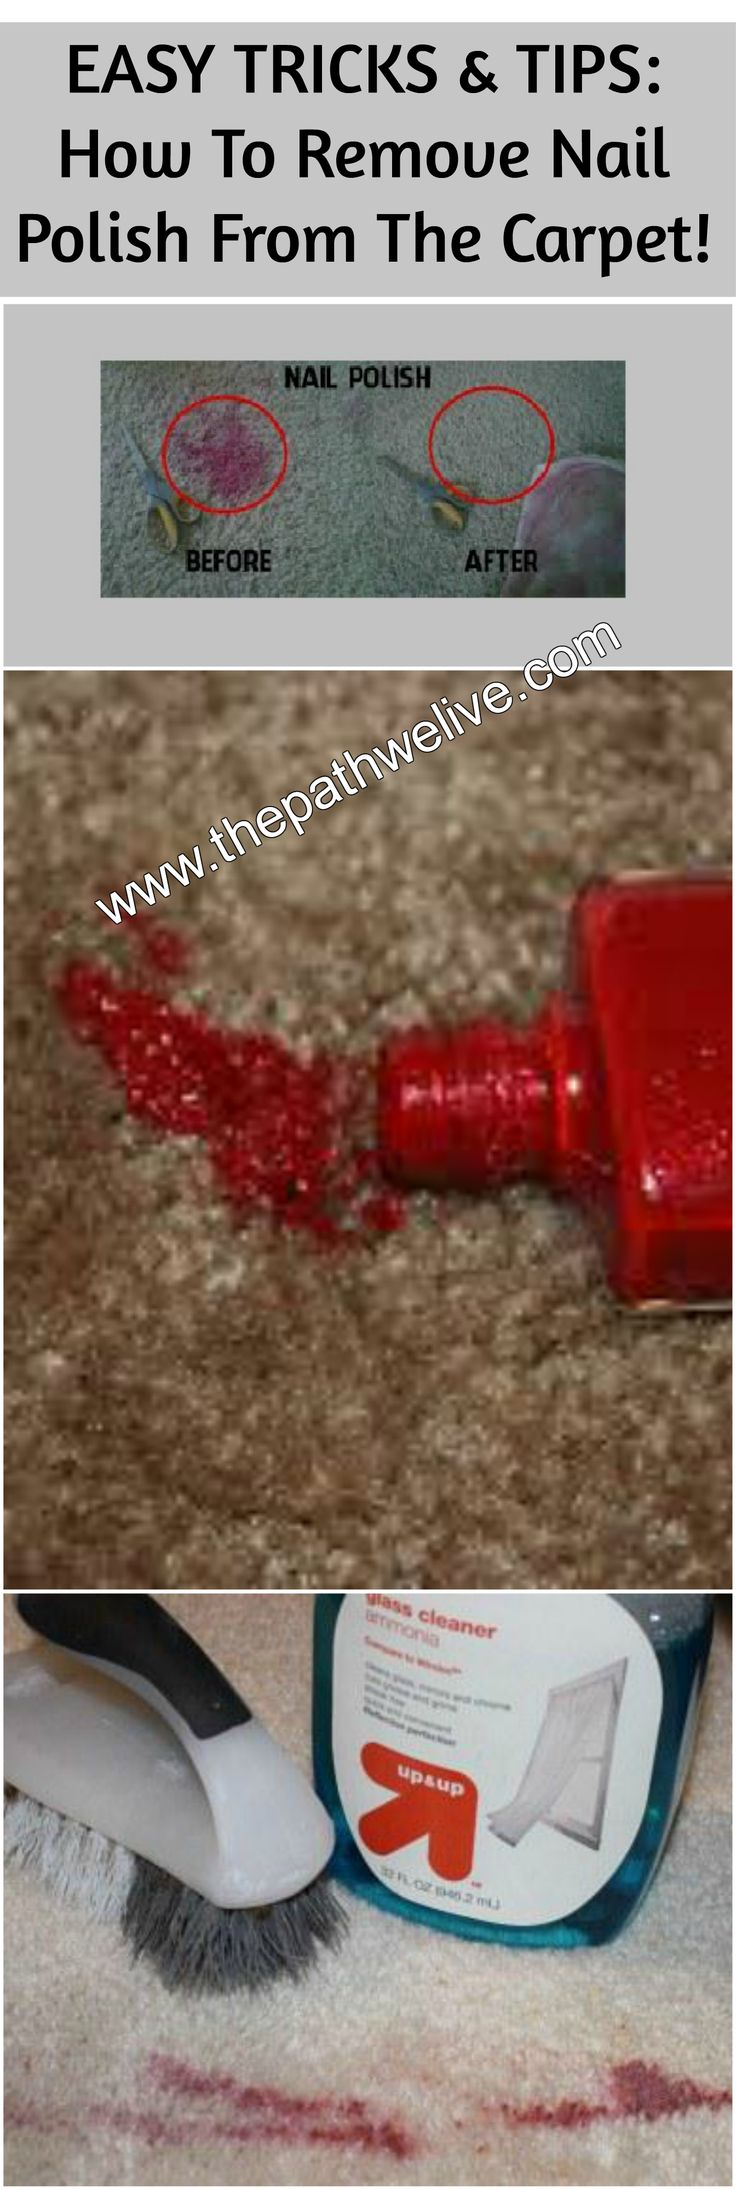 #cleaning #tips #remove #nailpolish #carpet #materials #help #solutions